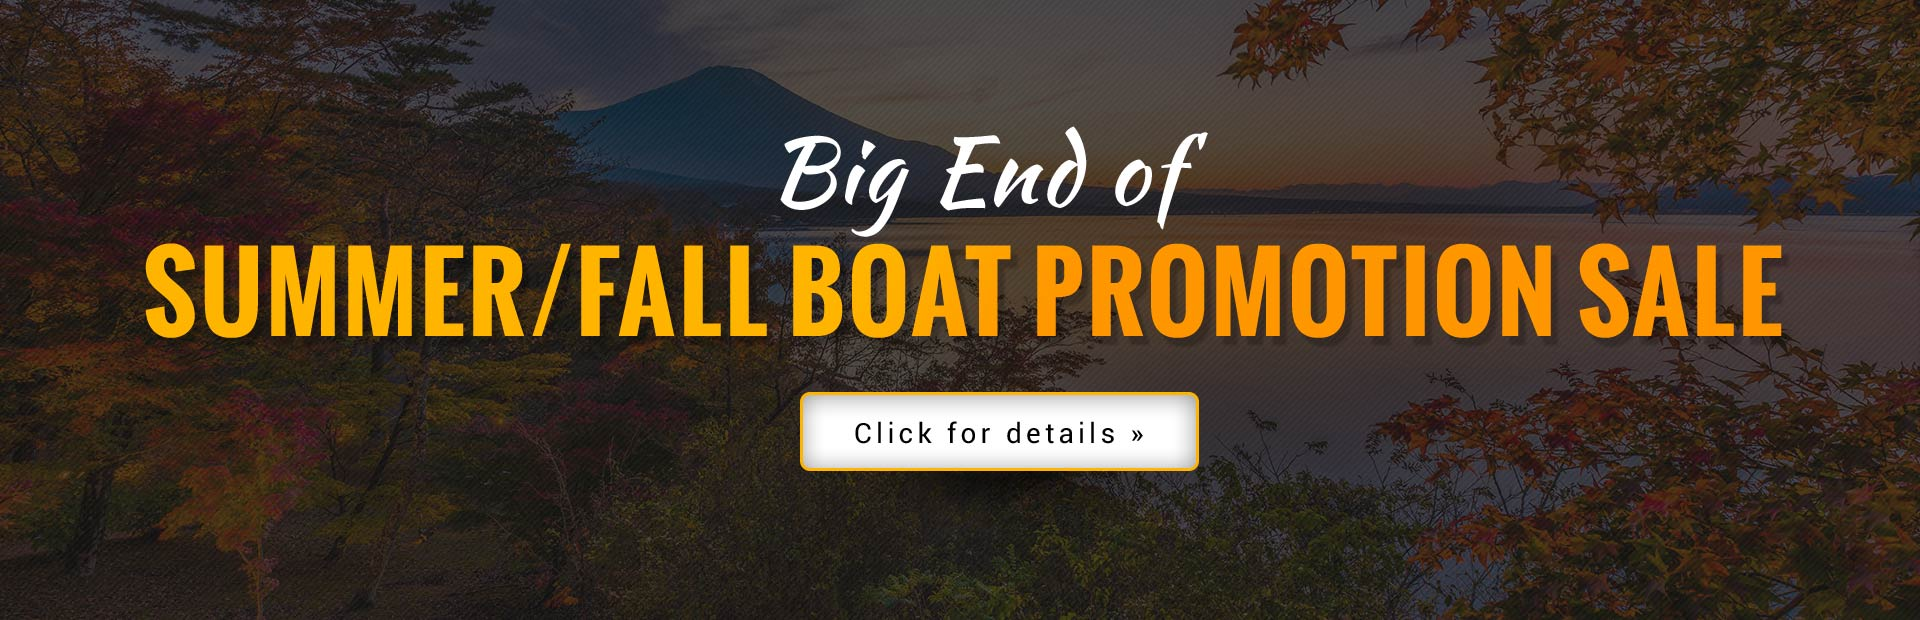 Big end of summer/fall boat promotion sale!